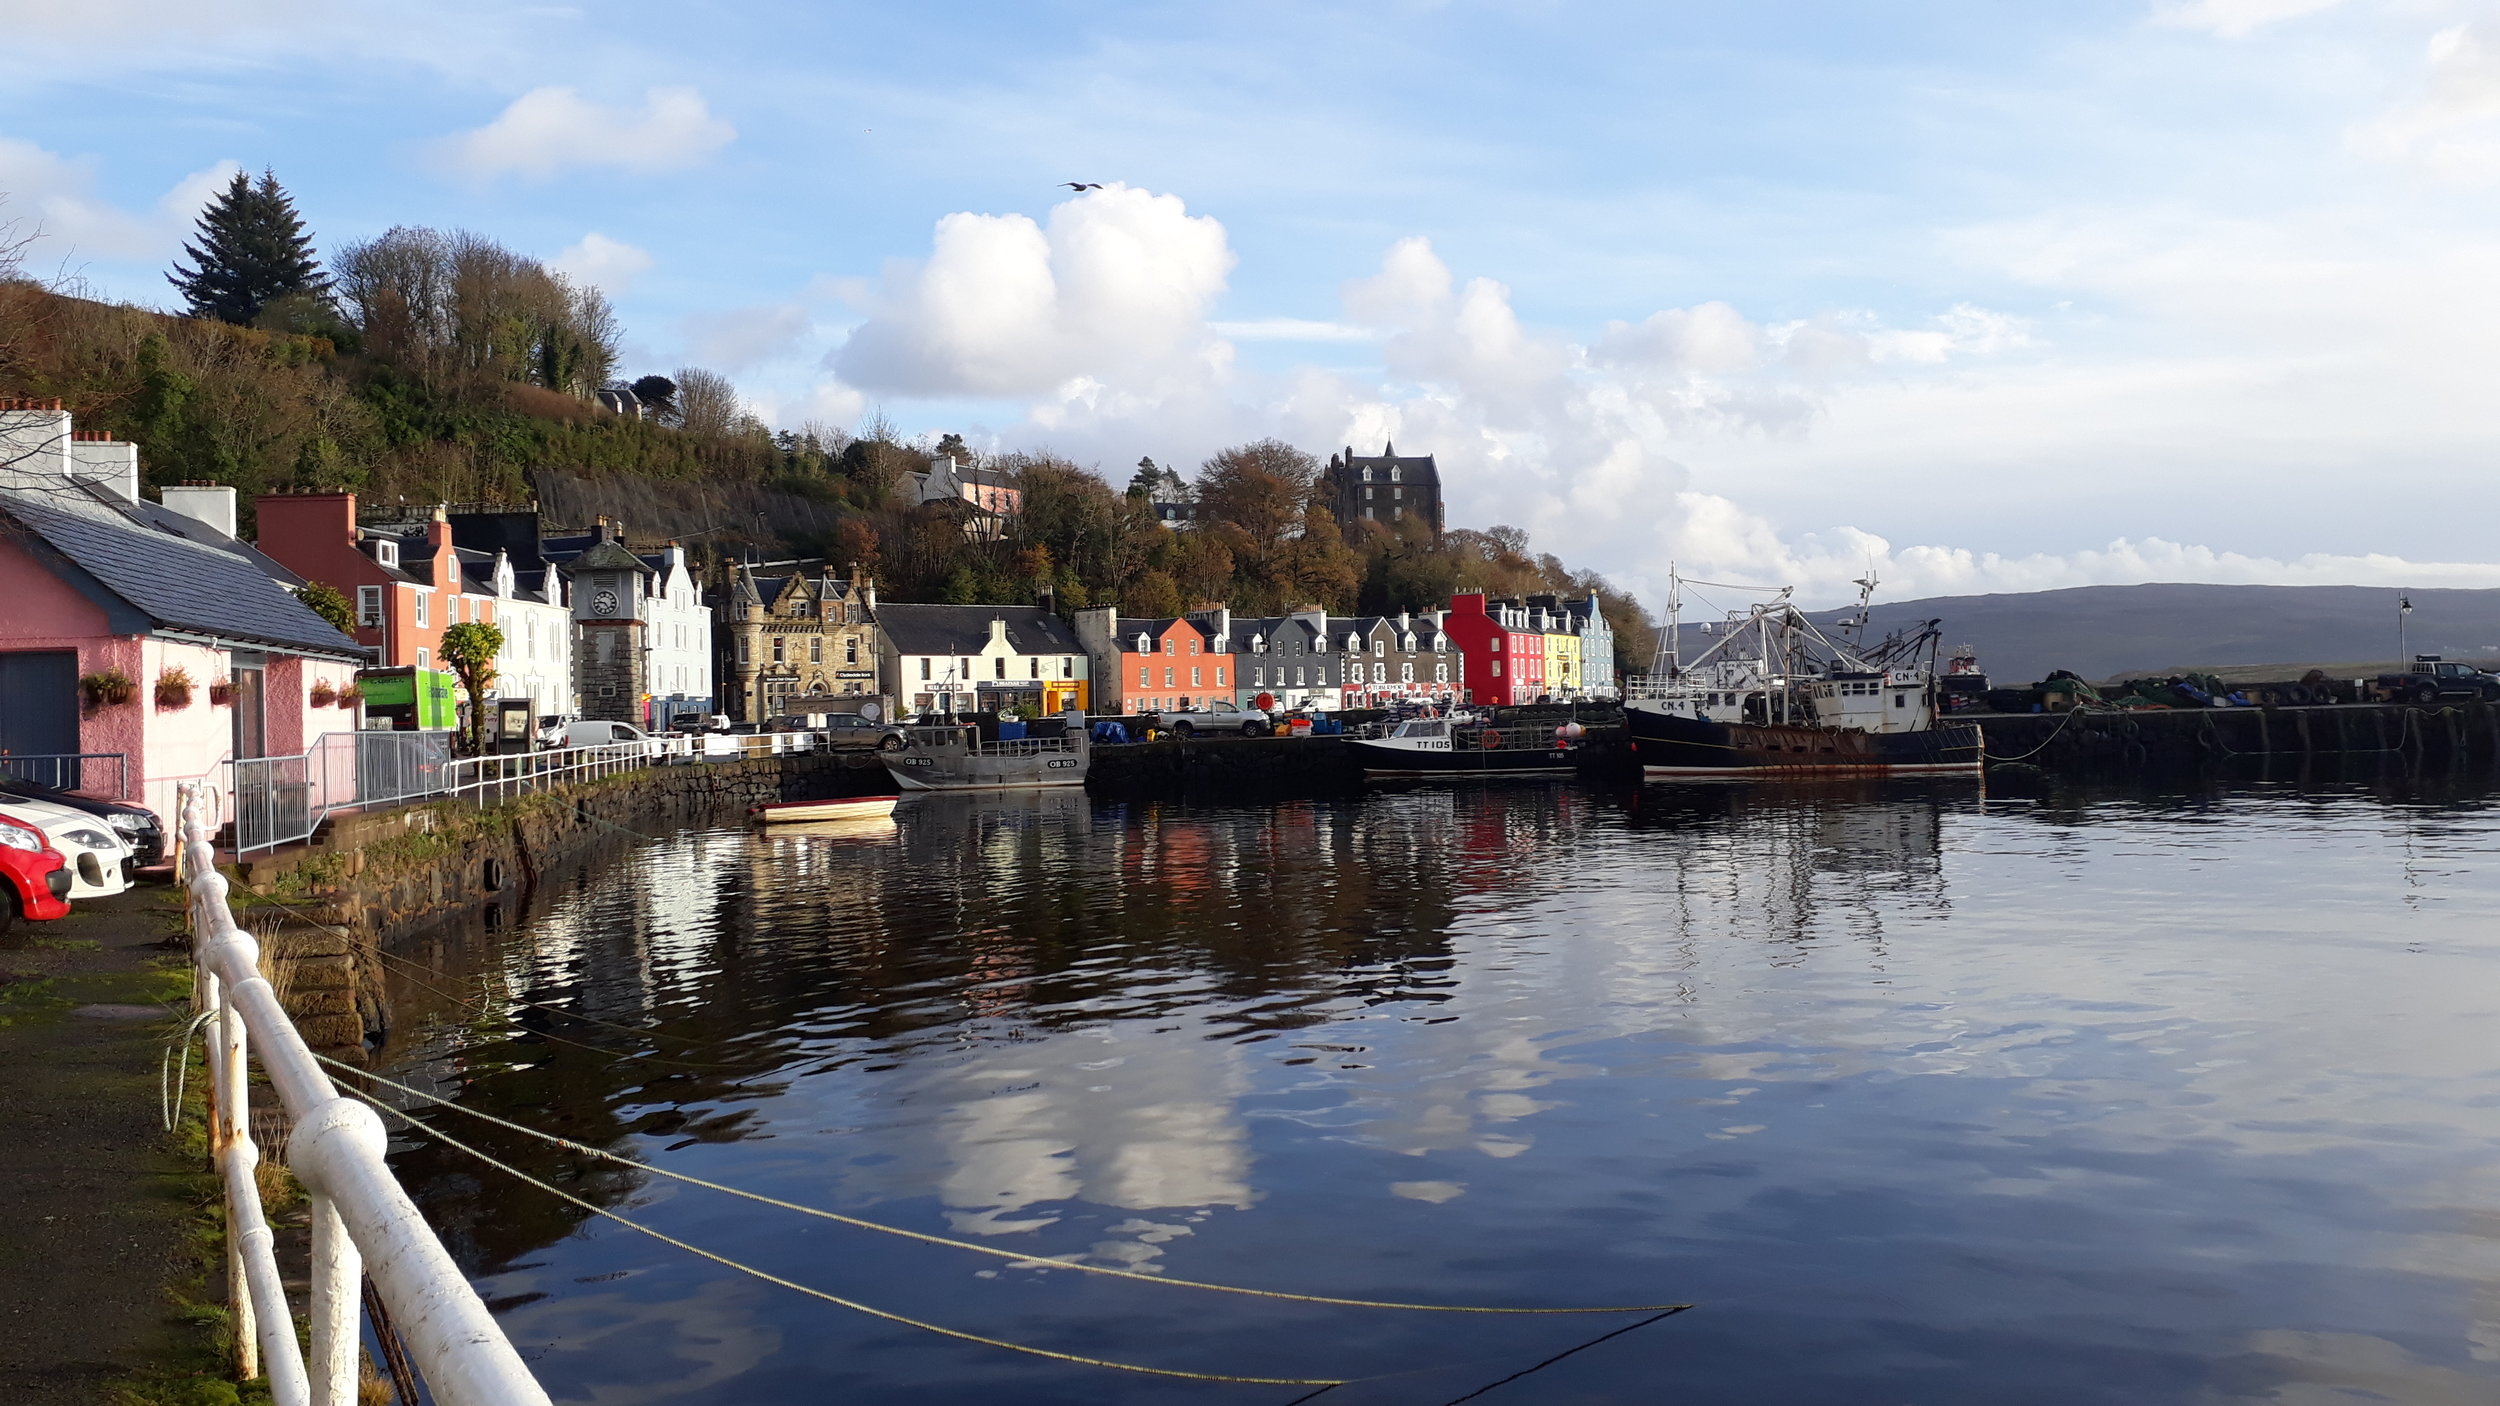 The picturesque town of Tobermory, headquarters of the Hebridean Whale and Dolphin Trust.